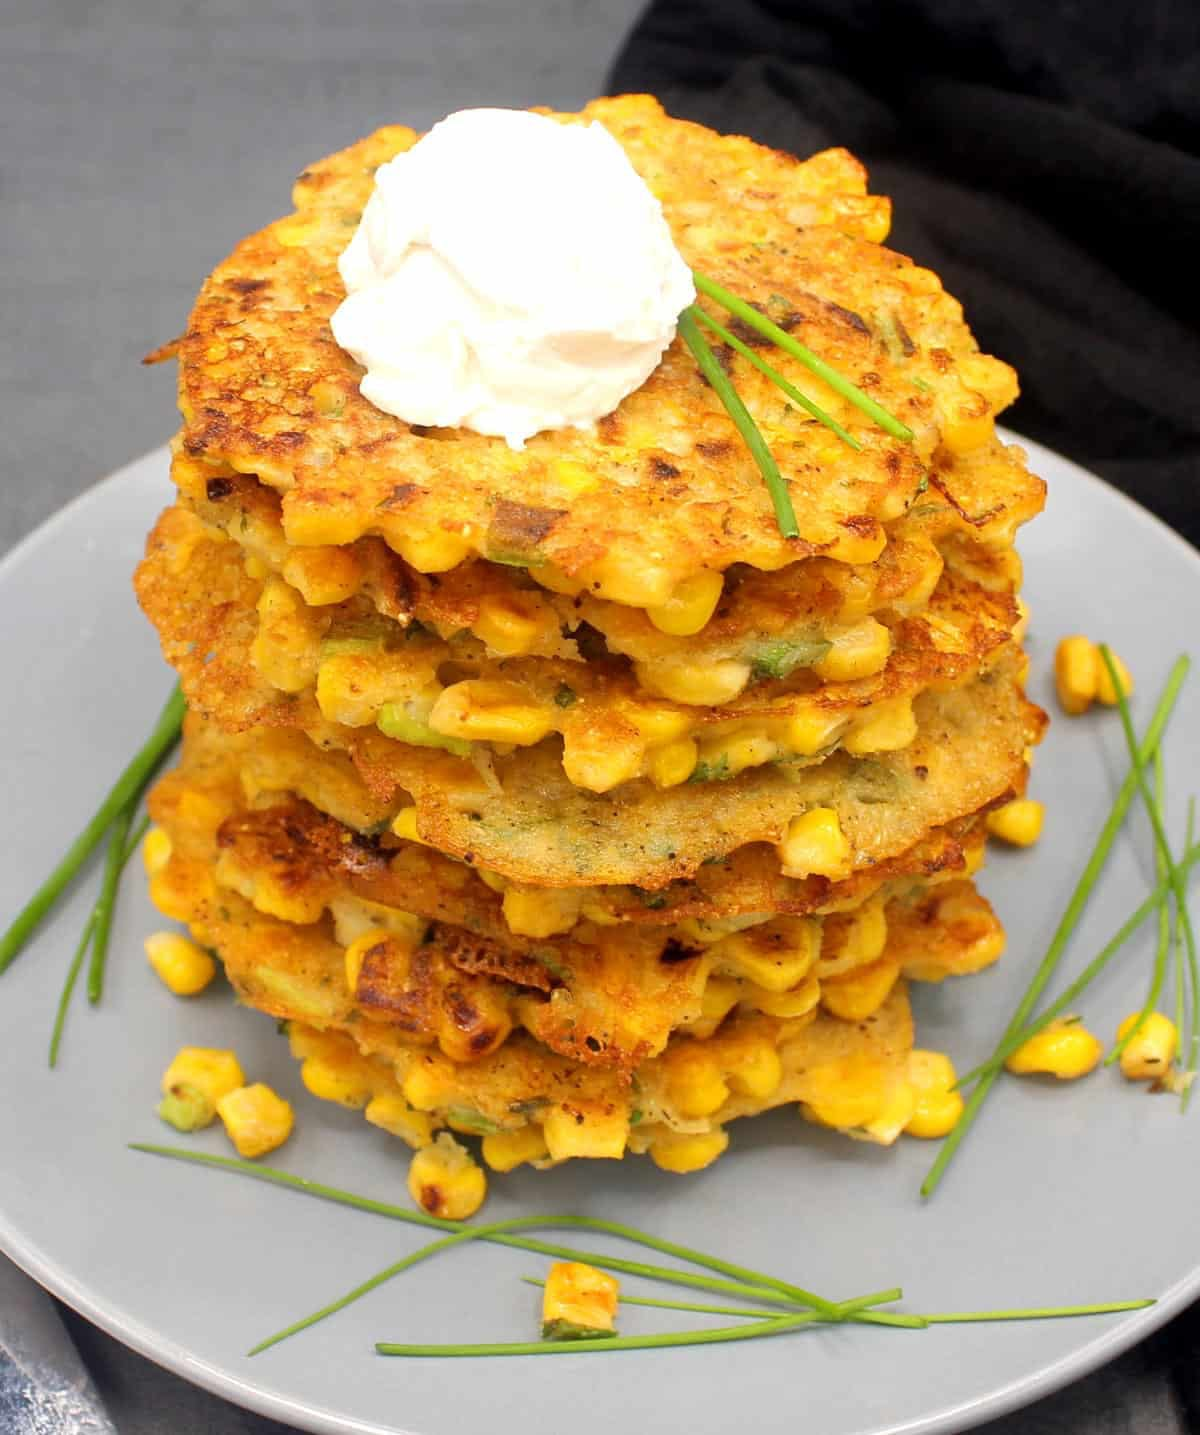 another stack of paler fritters